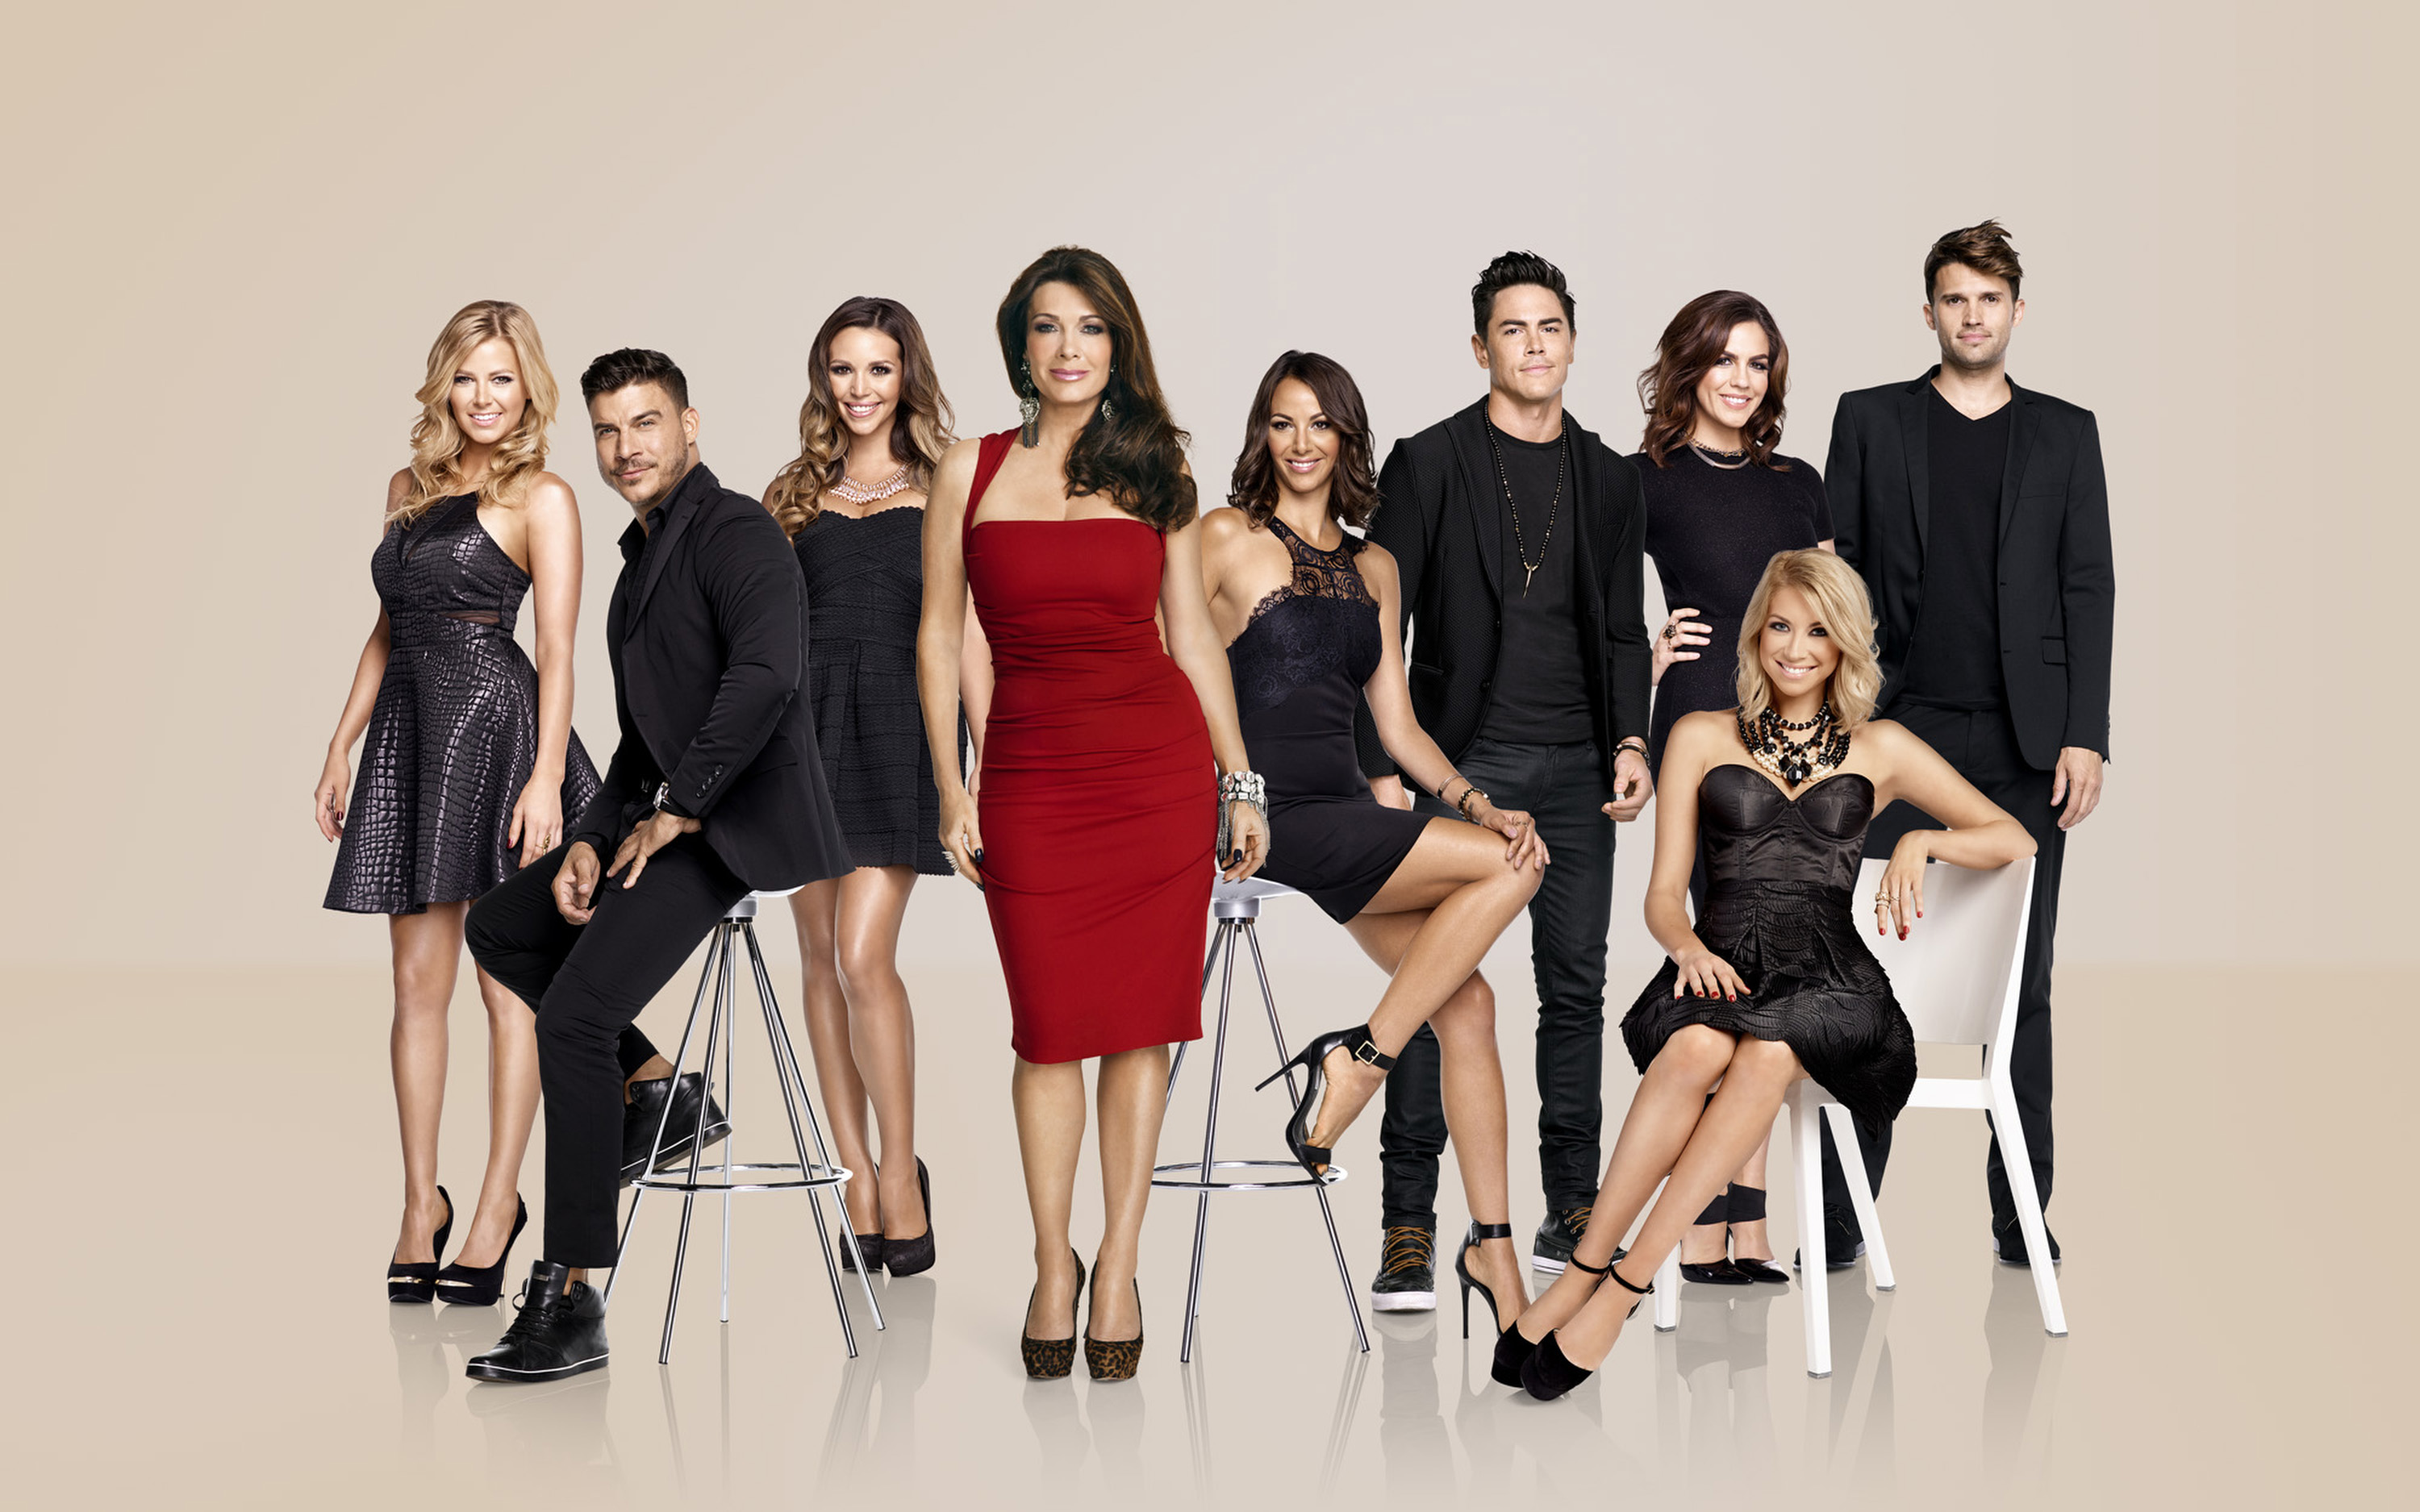 a cast photo from Vanderpump Rules